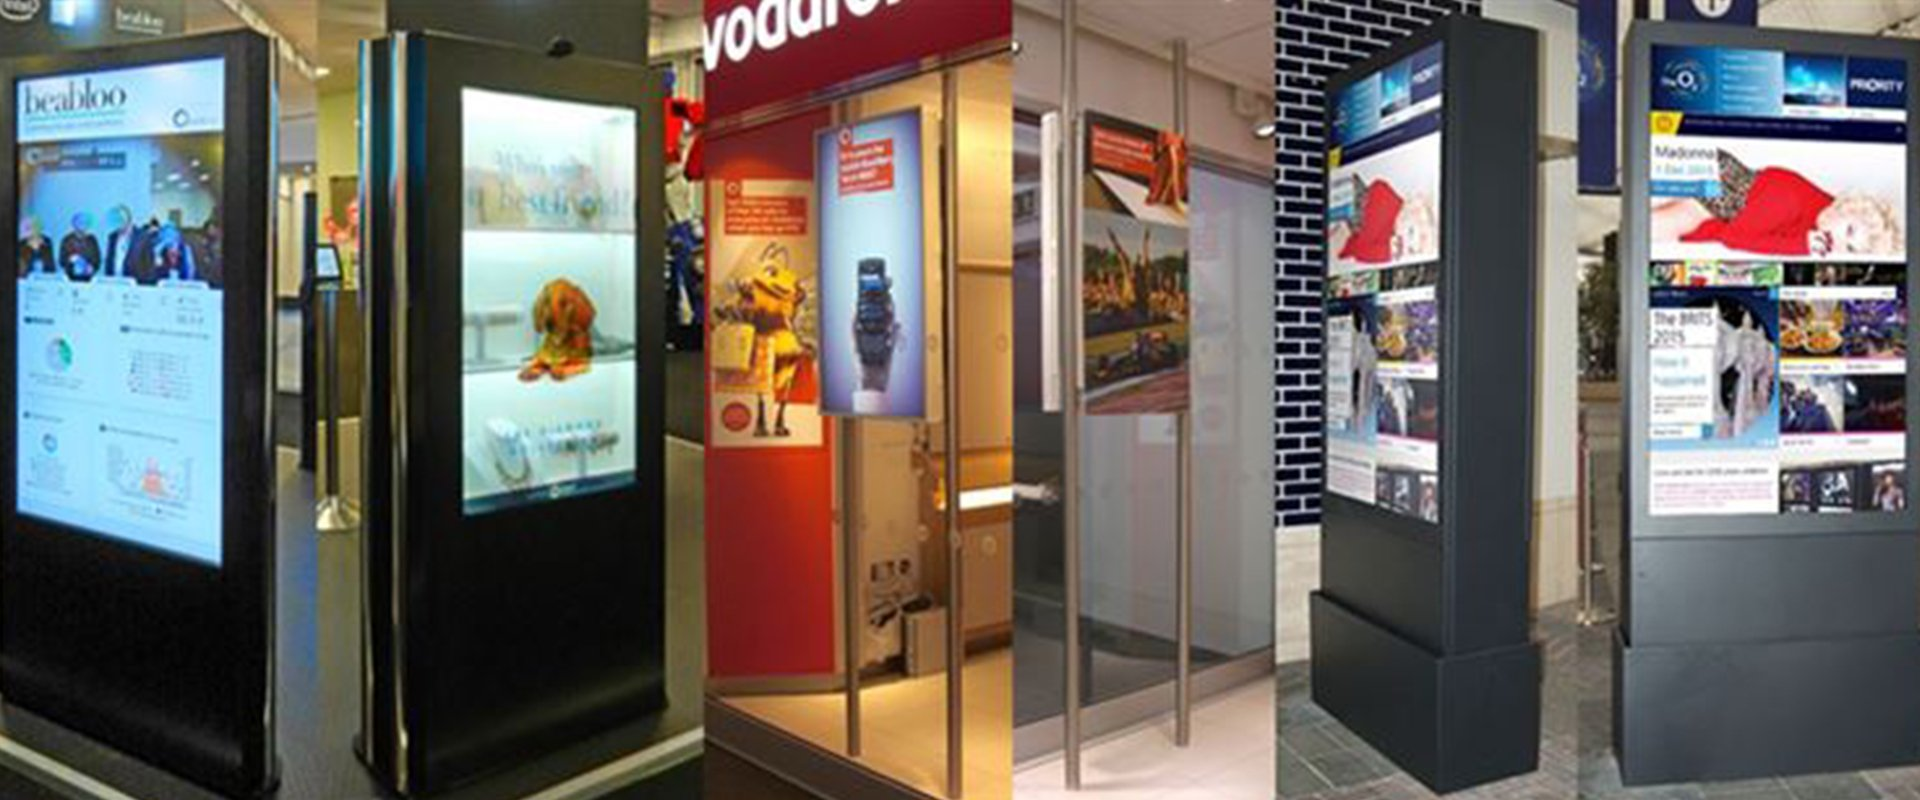 6 CONSIDERATIONS WHEN CHOOSING A TV KIOSK